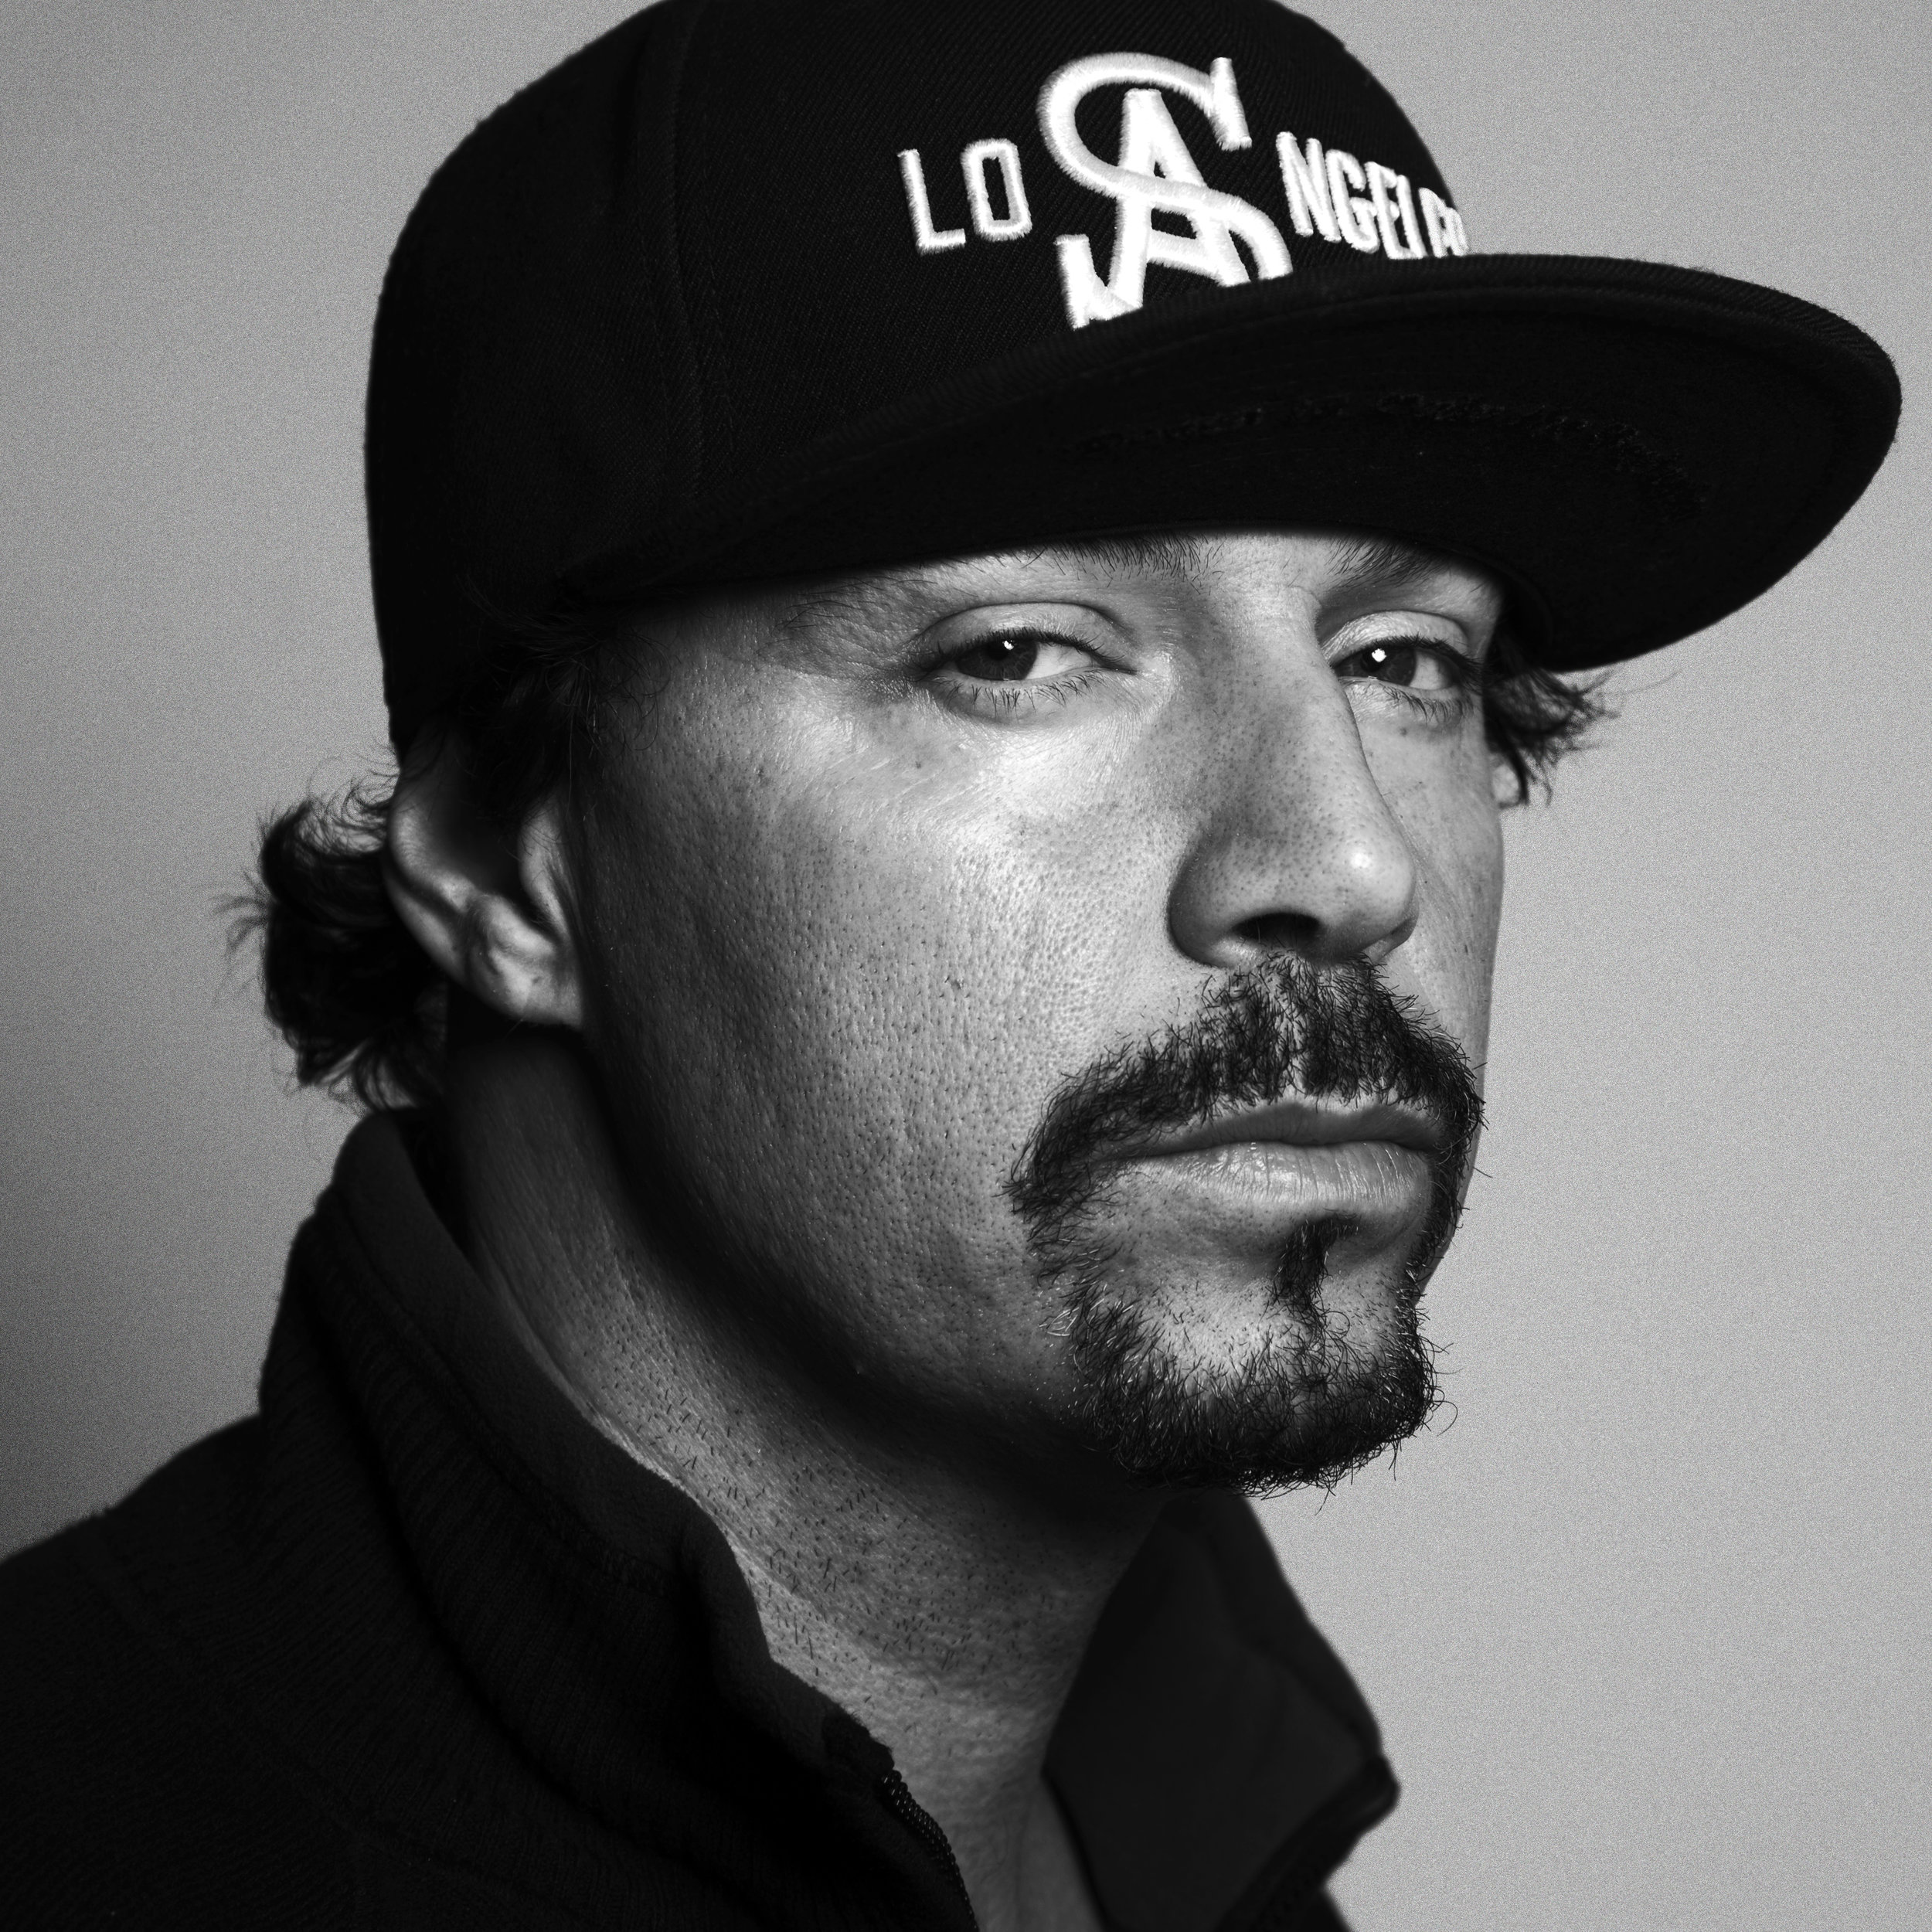 DJ Muggs of the Legendary Group Cypress Hill to Headline the Rock Steady Block Party! - VIEW THE PERFORMANCE SCHEDULE